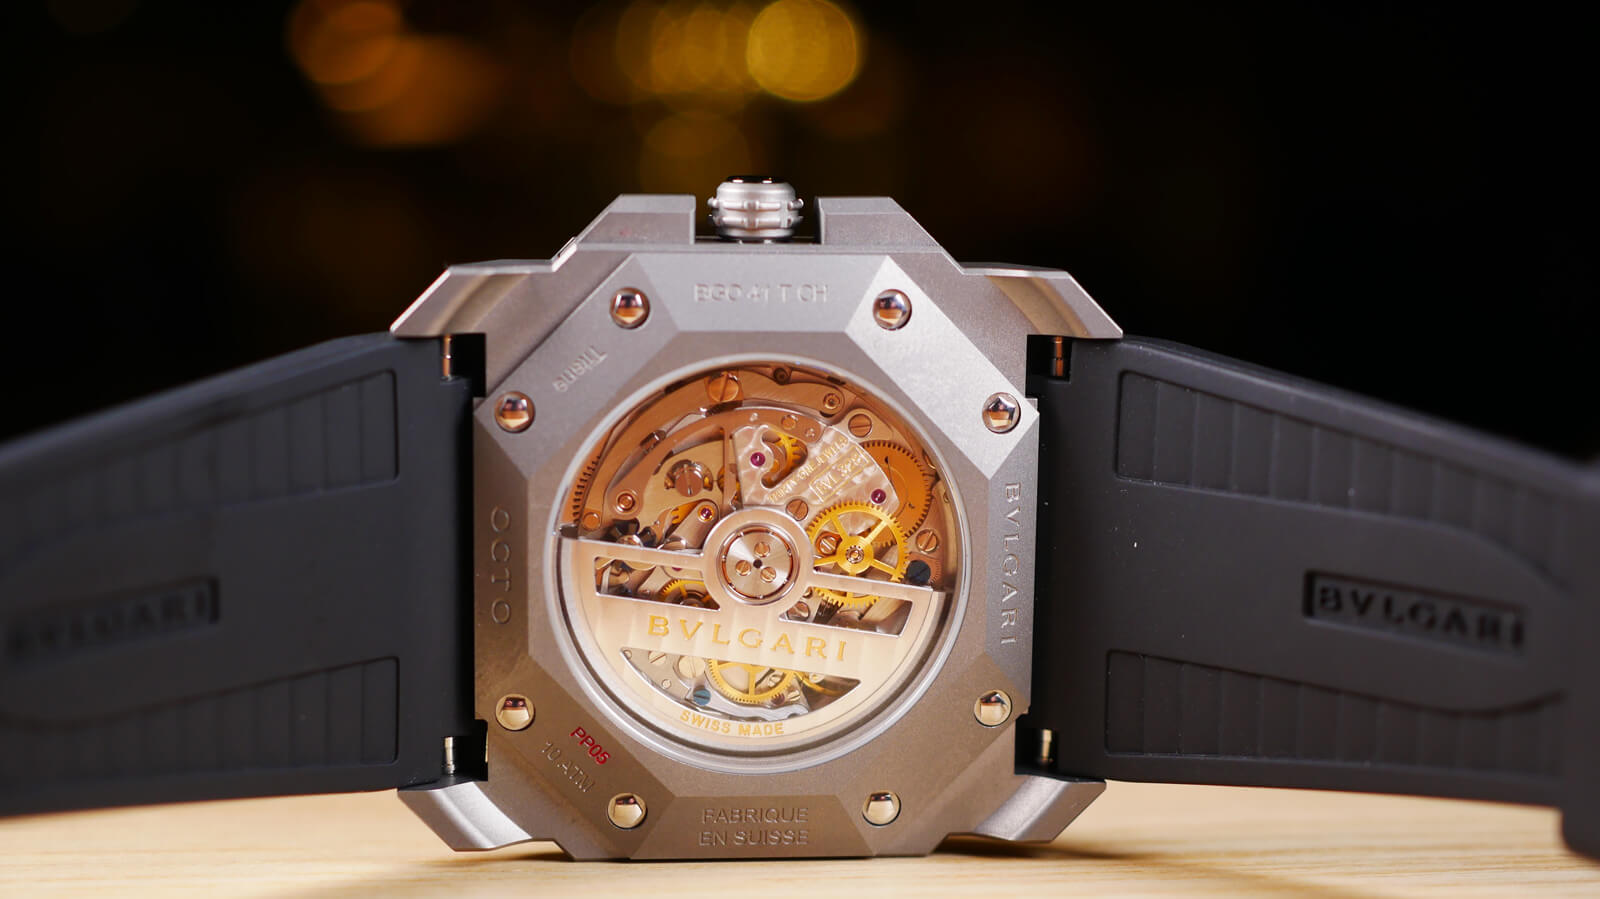 Bulgari Octo L'Originale Chronograph with column-wheel chronograph movement and silicon escapement